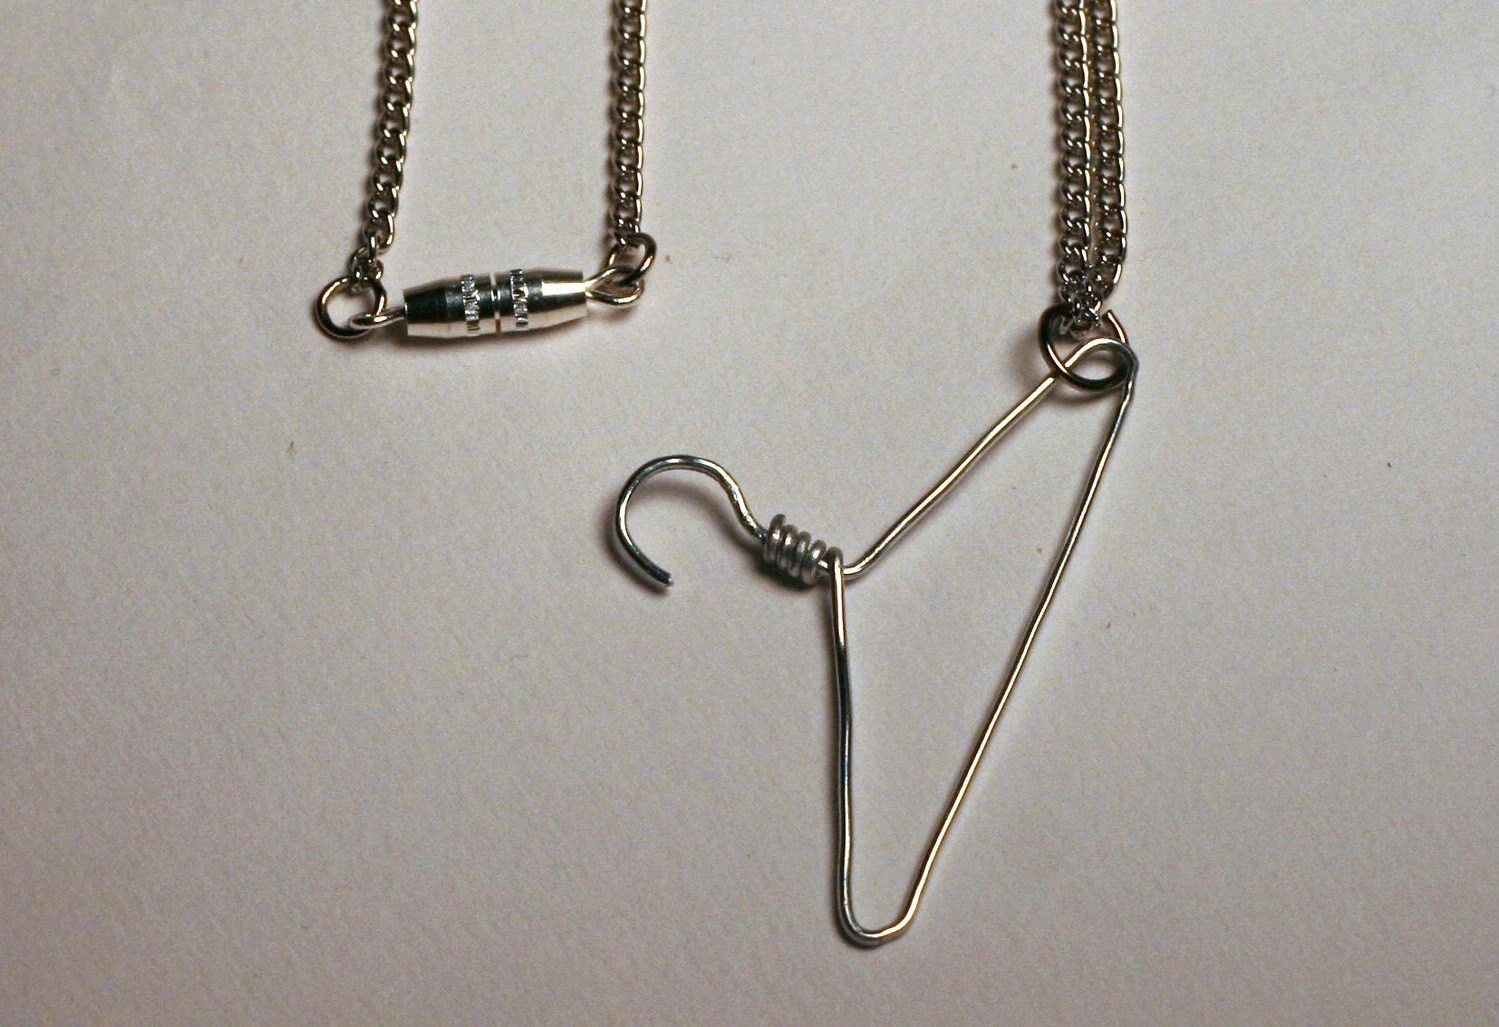 Stand With Planned Parenthood ProChoice Hanger Necklace - All Profits Go To Planned Parenthood